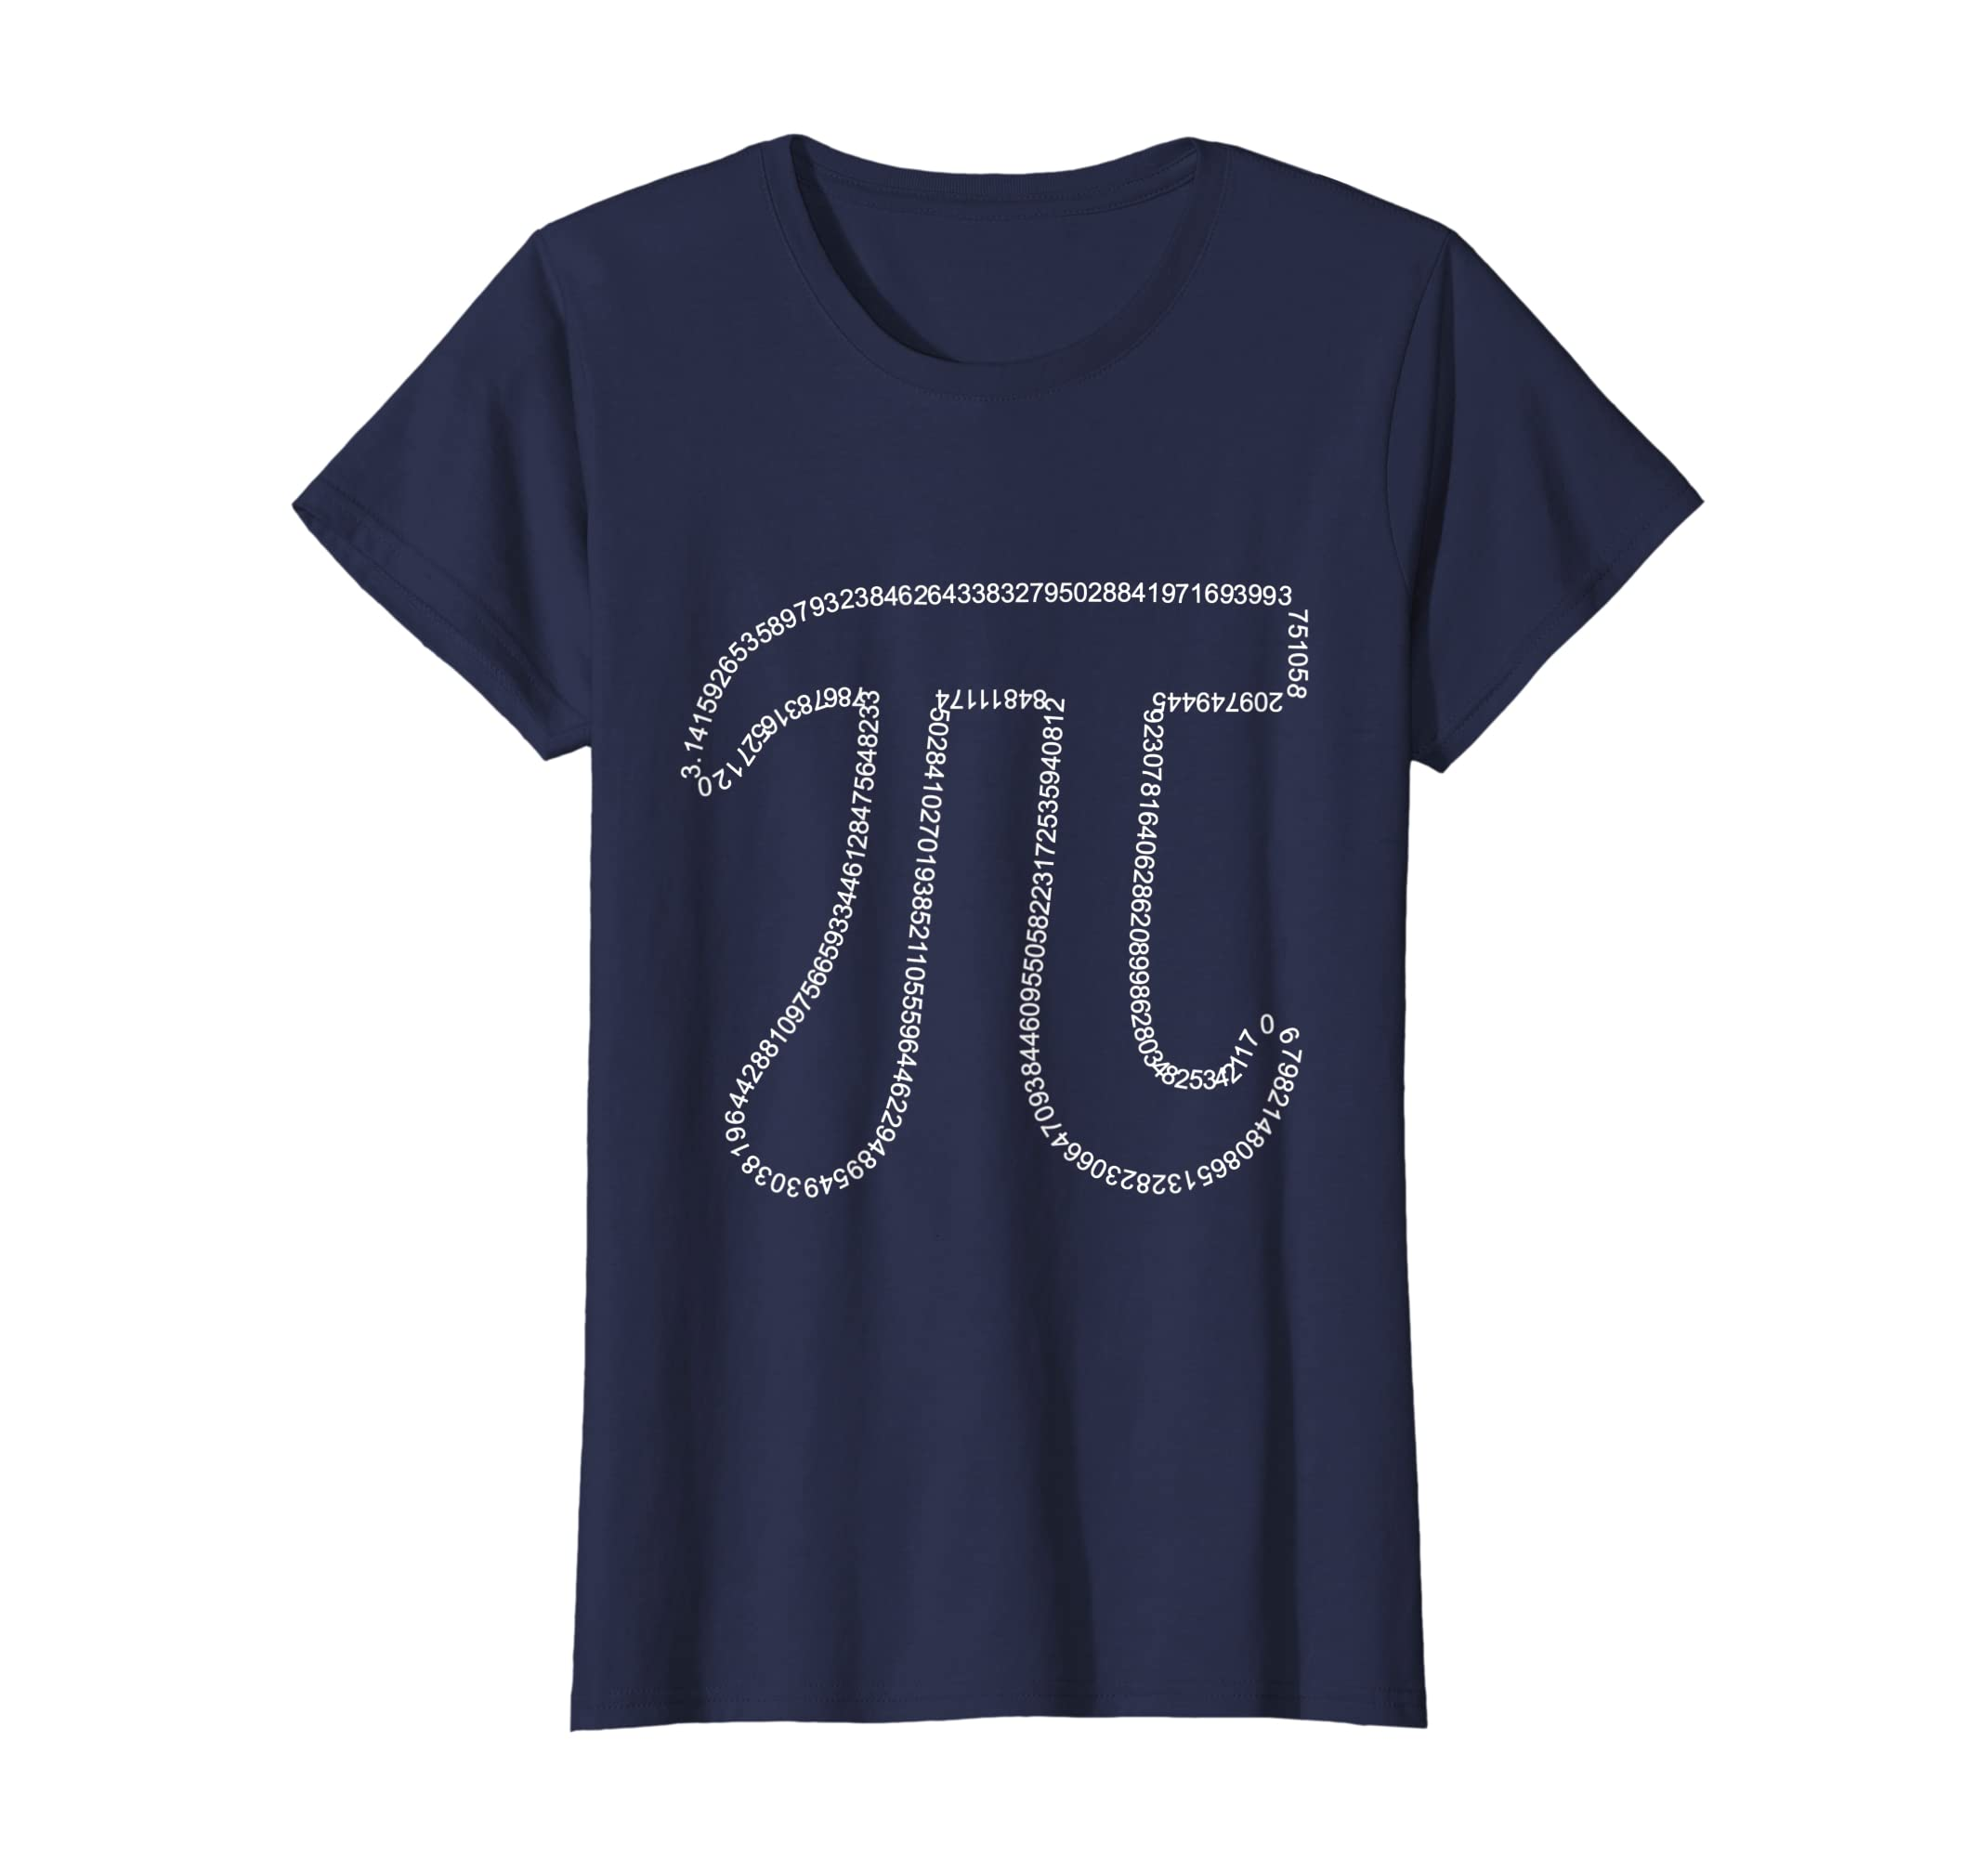 aa1e54231 Amazon.com: Pi Day Number 3.14159265359... Math 3.14 Funny T-Shirt: Clothing